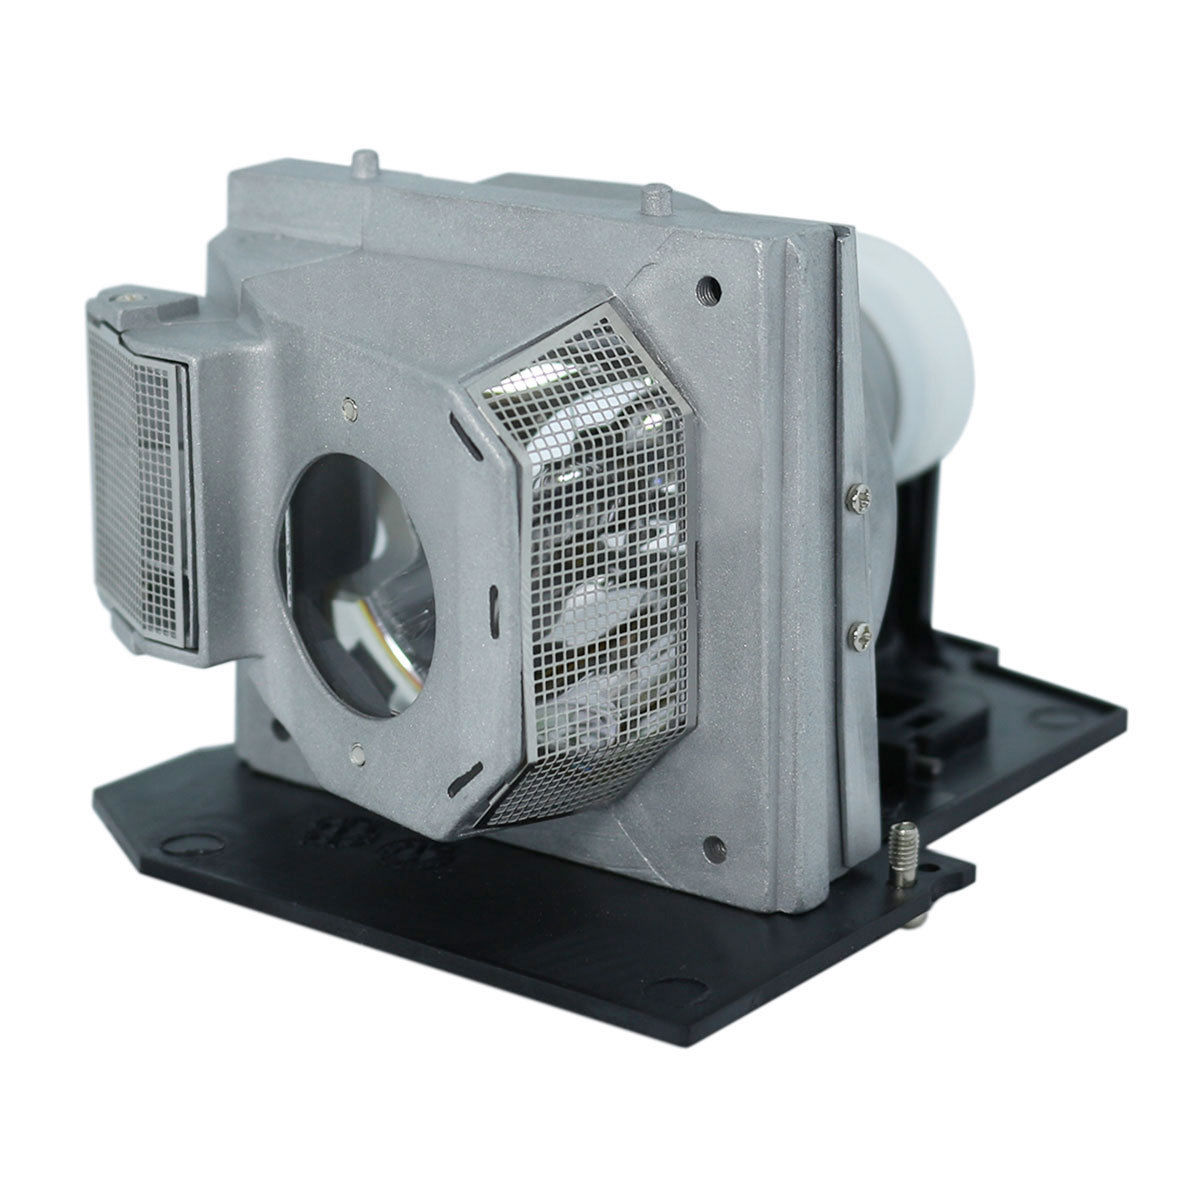 Projector Lamp Bulb SP-LAMP-032 SPLAMP032 for Infocus IN81 IN82 IN83 M82 X10 IN80 With housing free shipping replacement projector bare bulb sp lamp 032 for infocus in81 in82 in83 m82 x10 in80 projector